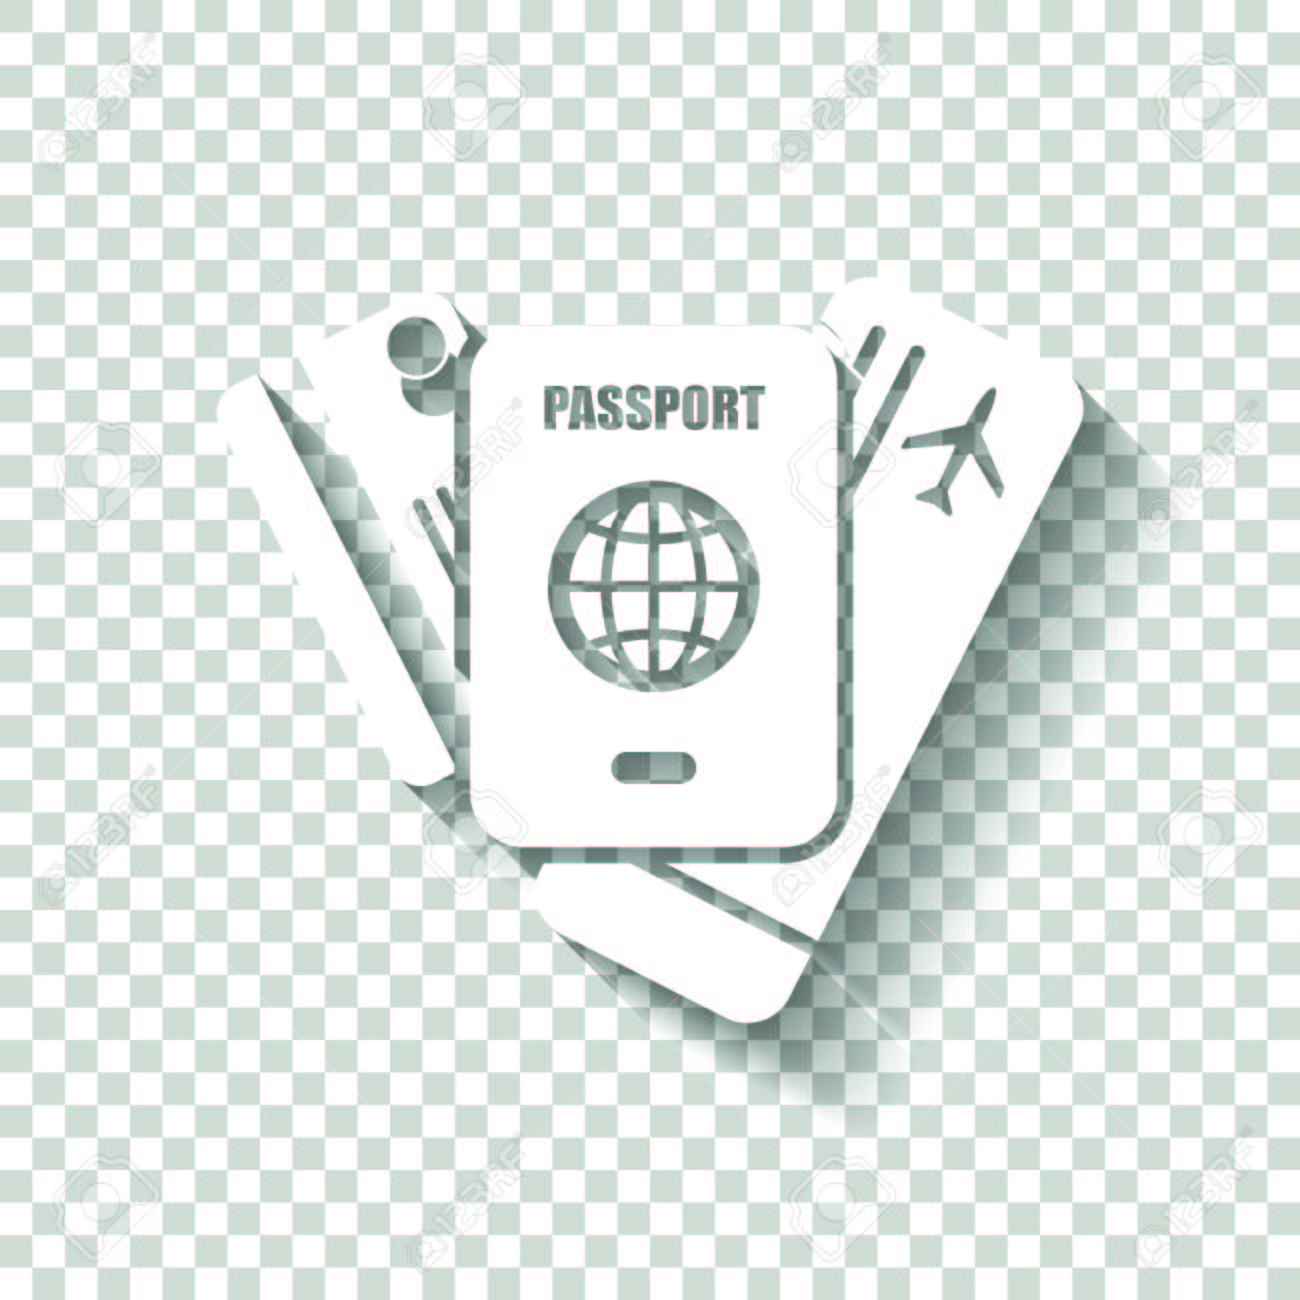 passport ticket credit card air travel concept white icon